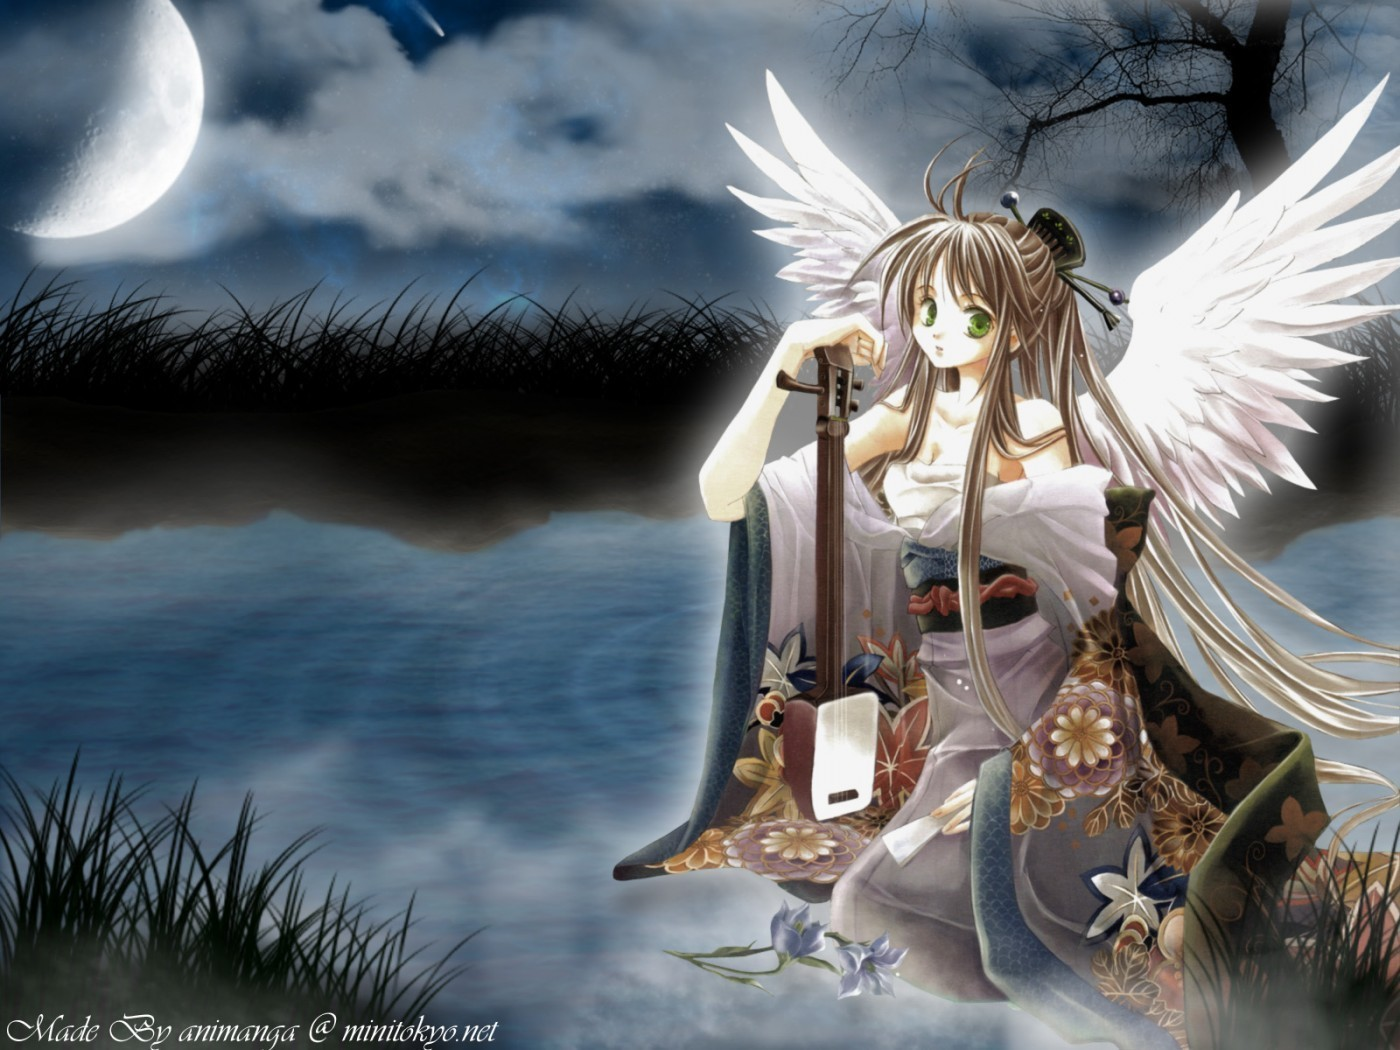 angels ponds Anime anime HD Wallpaper